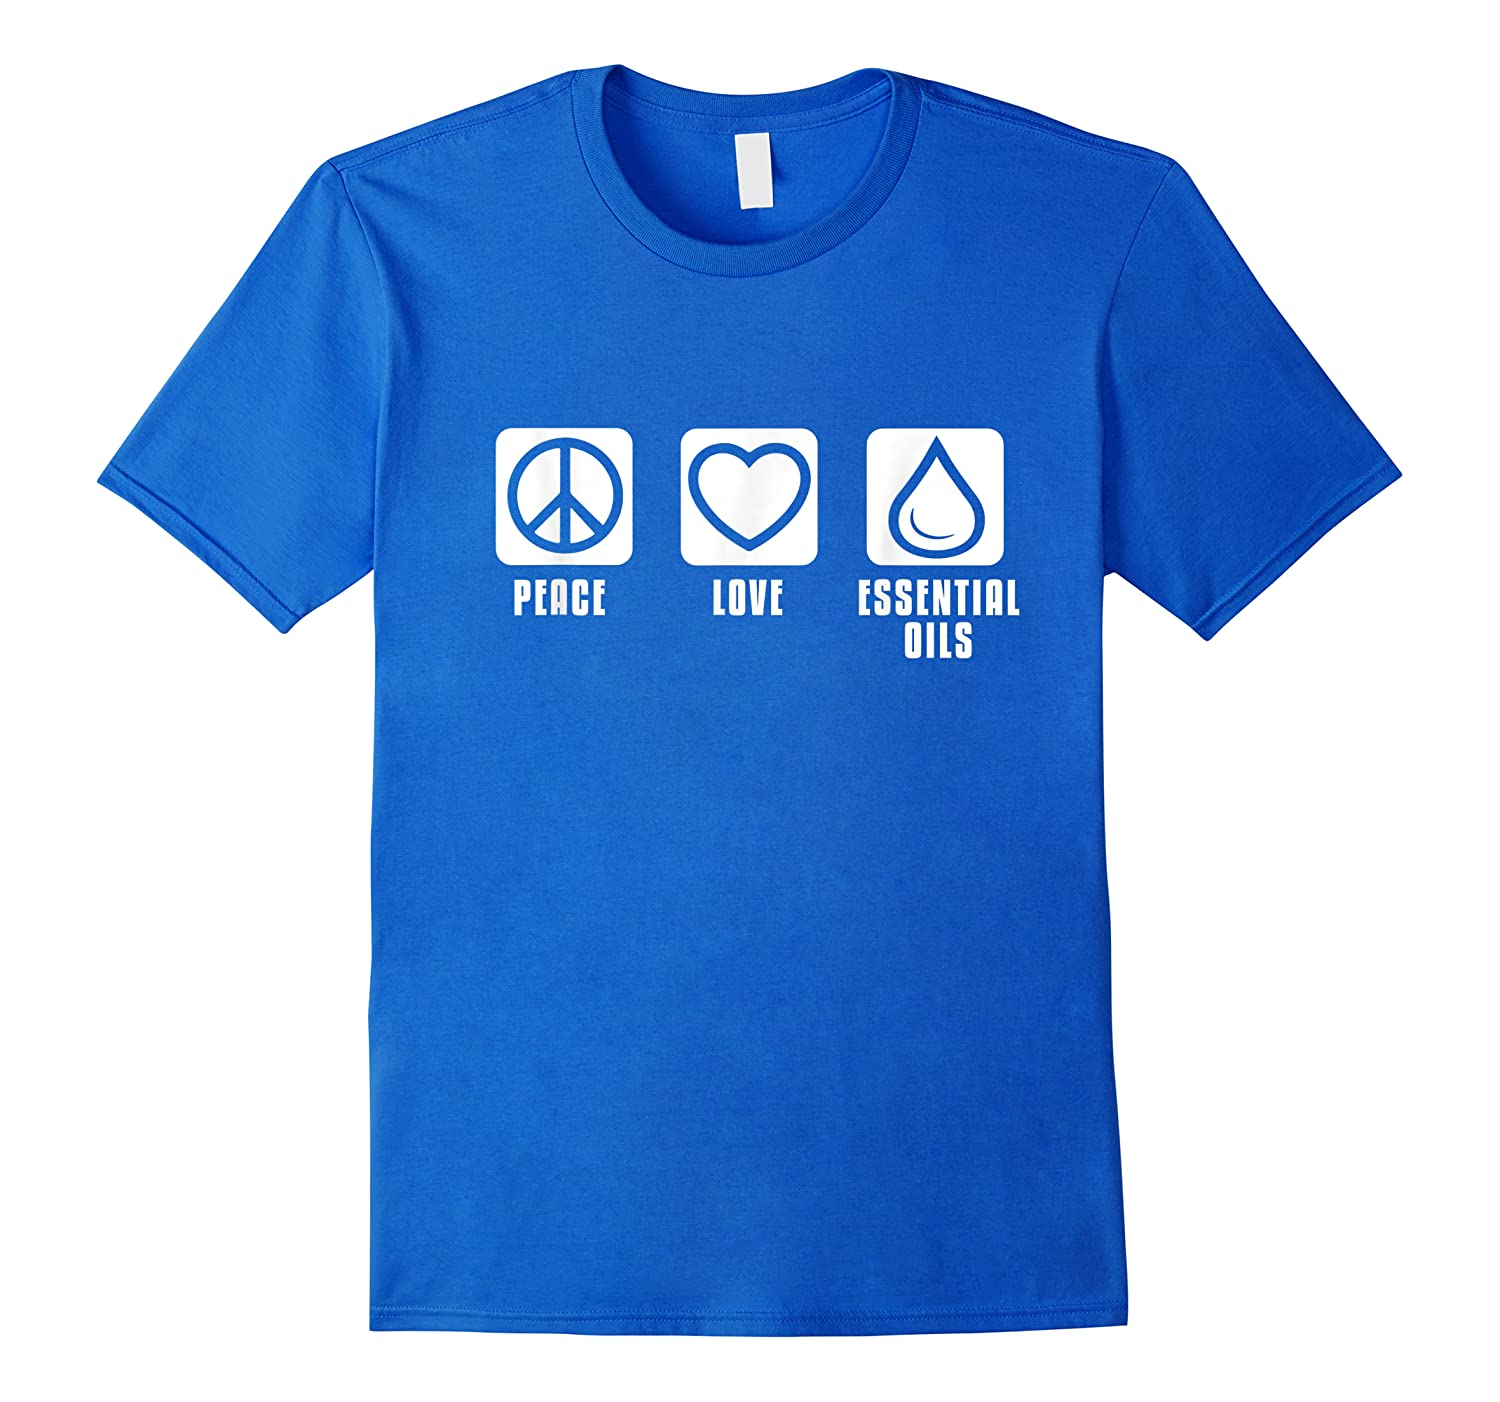 Essential Oil Gifts Shirts